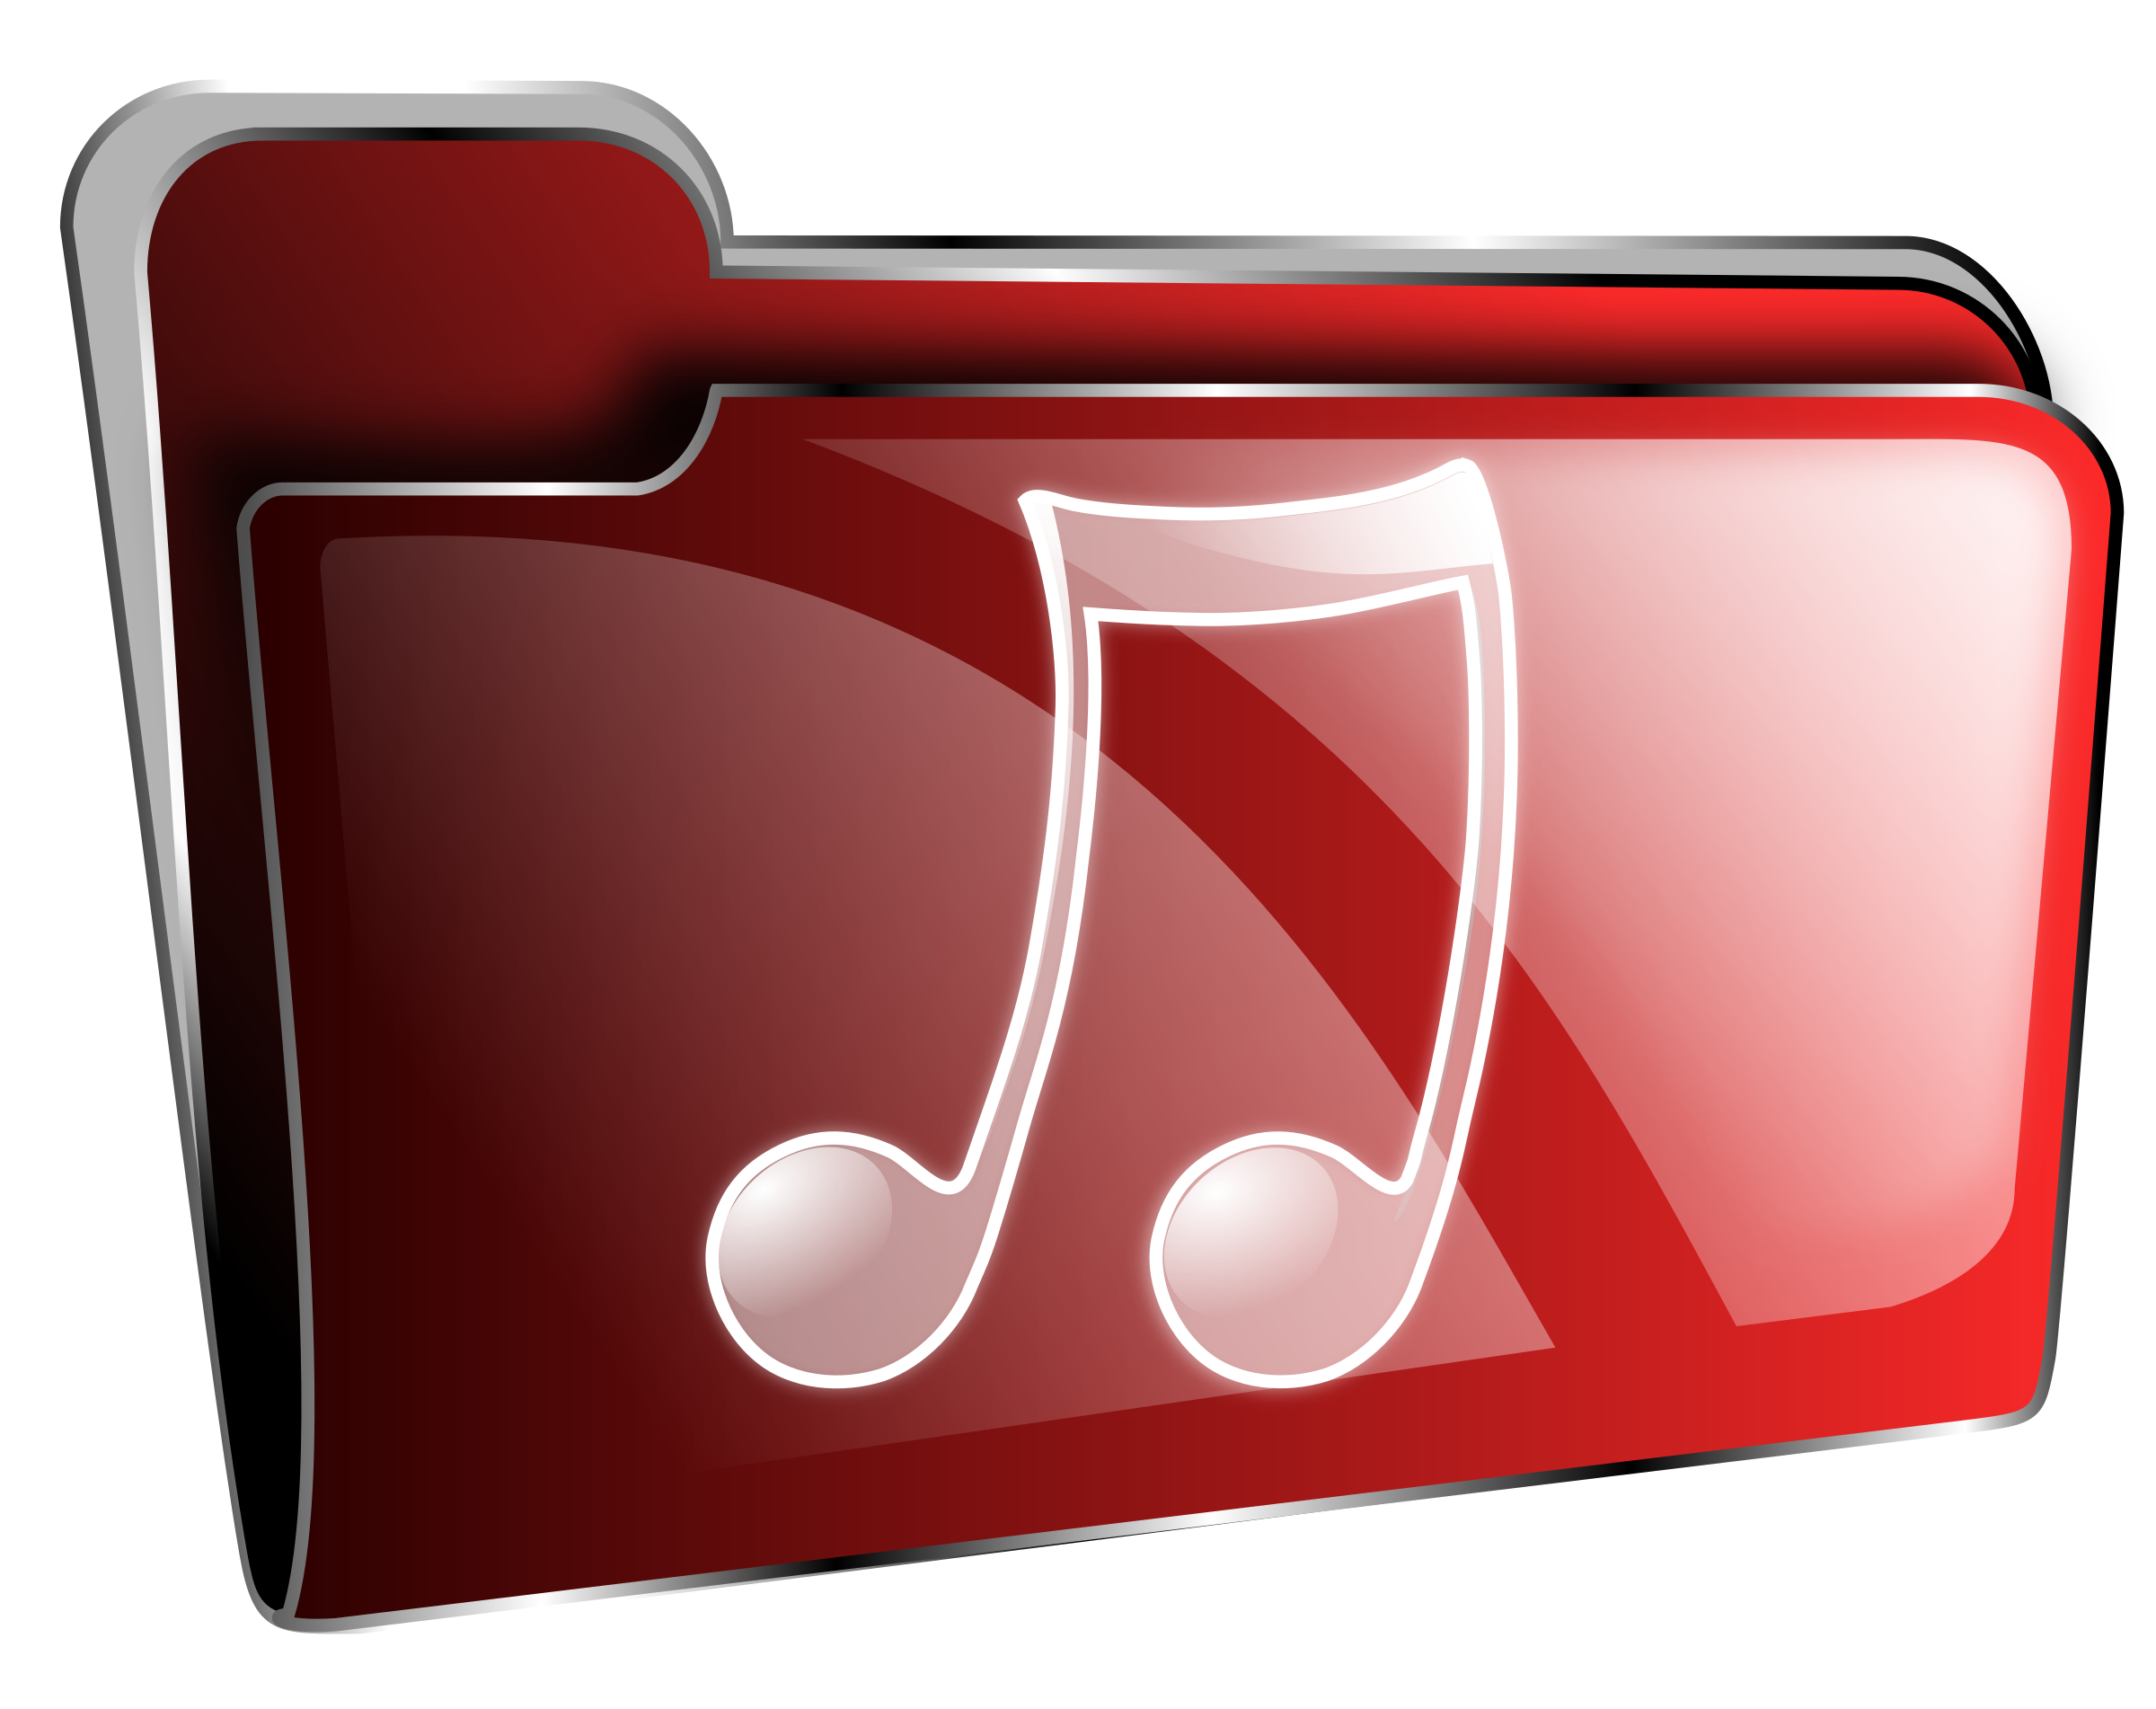 Folder icon red music by roshellin